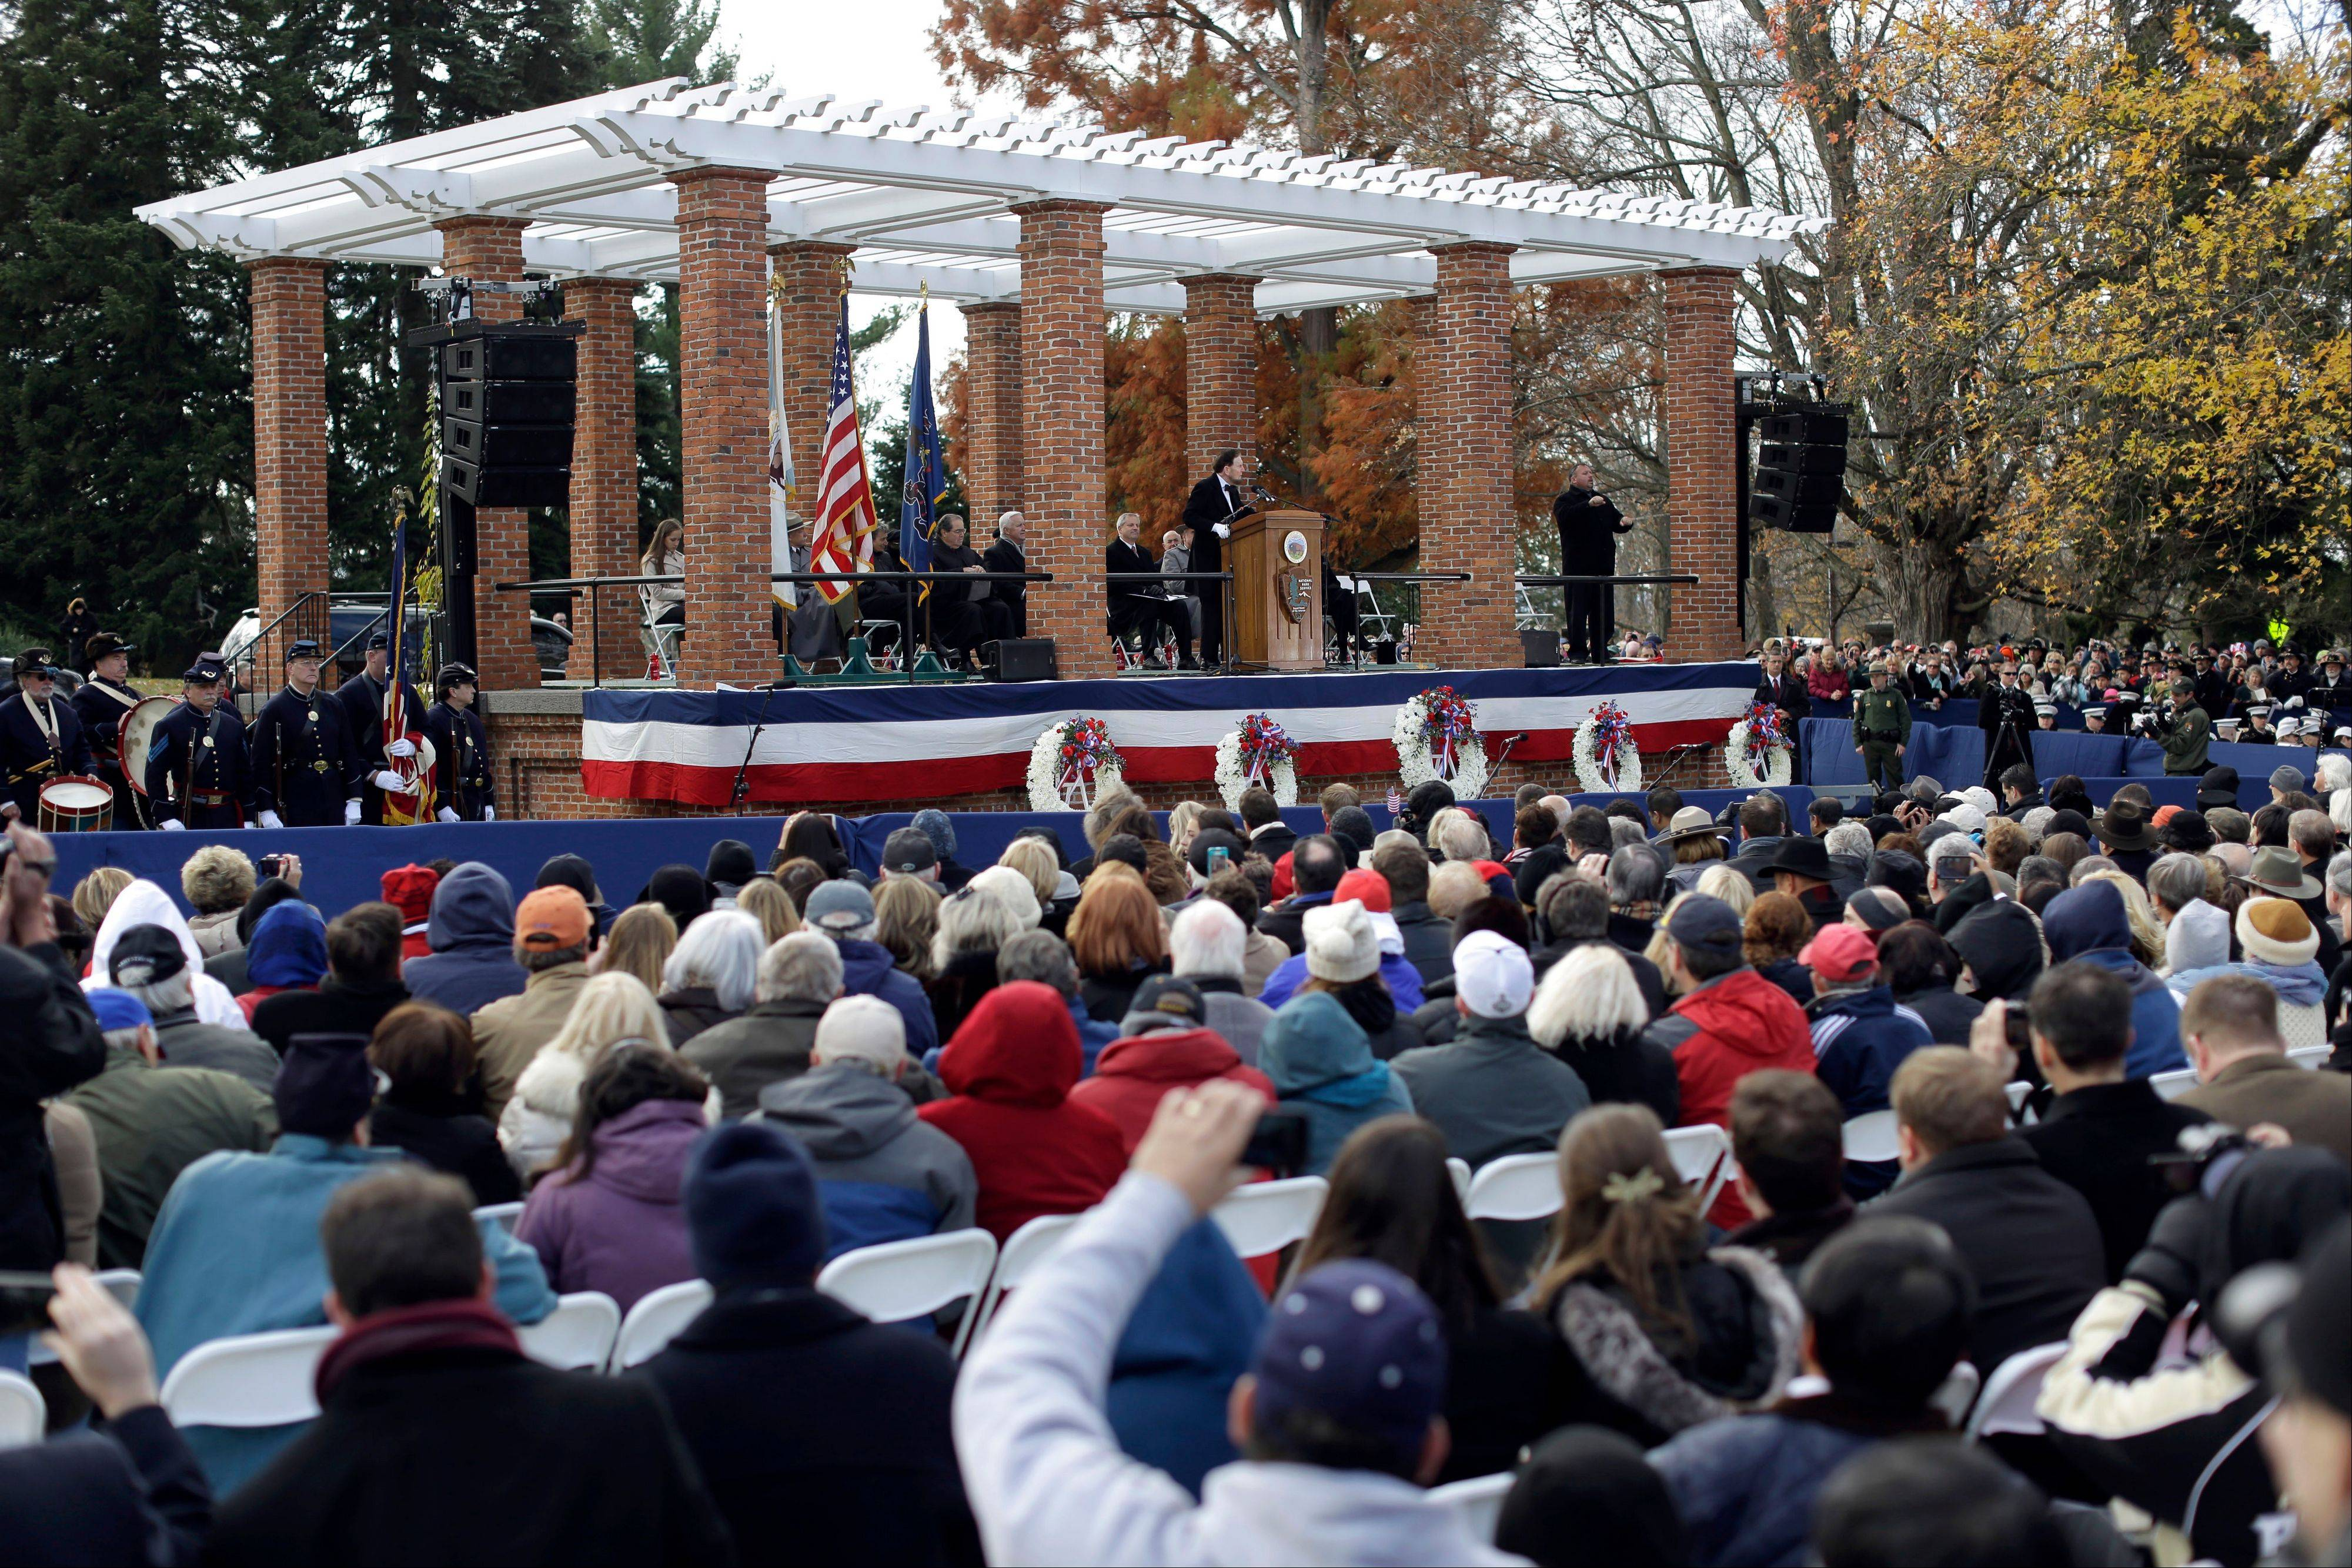 Thousands gathered Tuesday to commemorate the 150th anniversary of the Gettysburg Address.